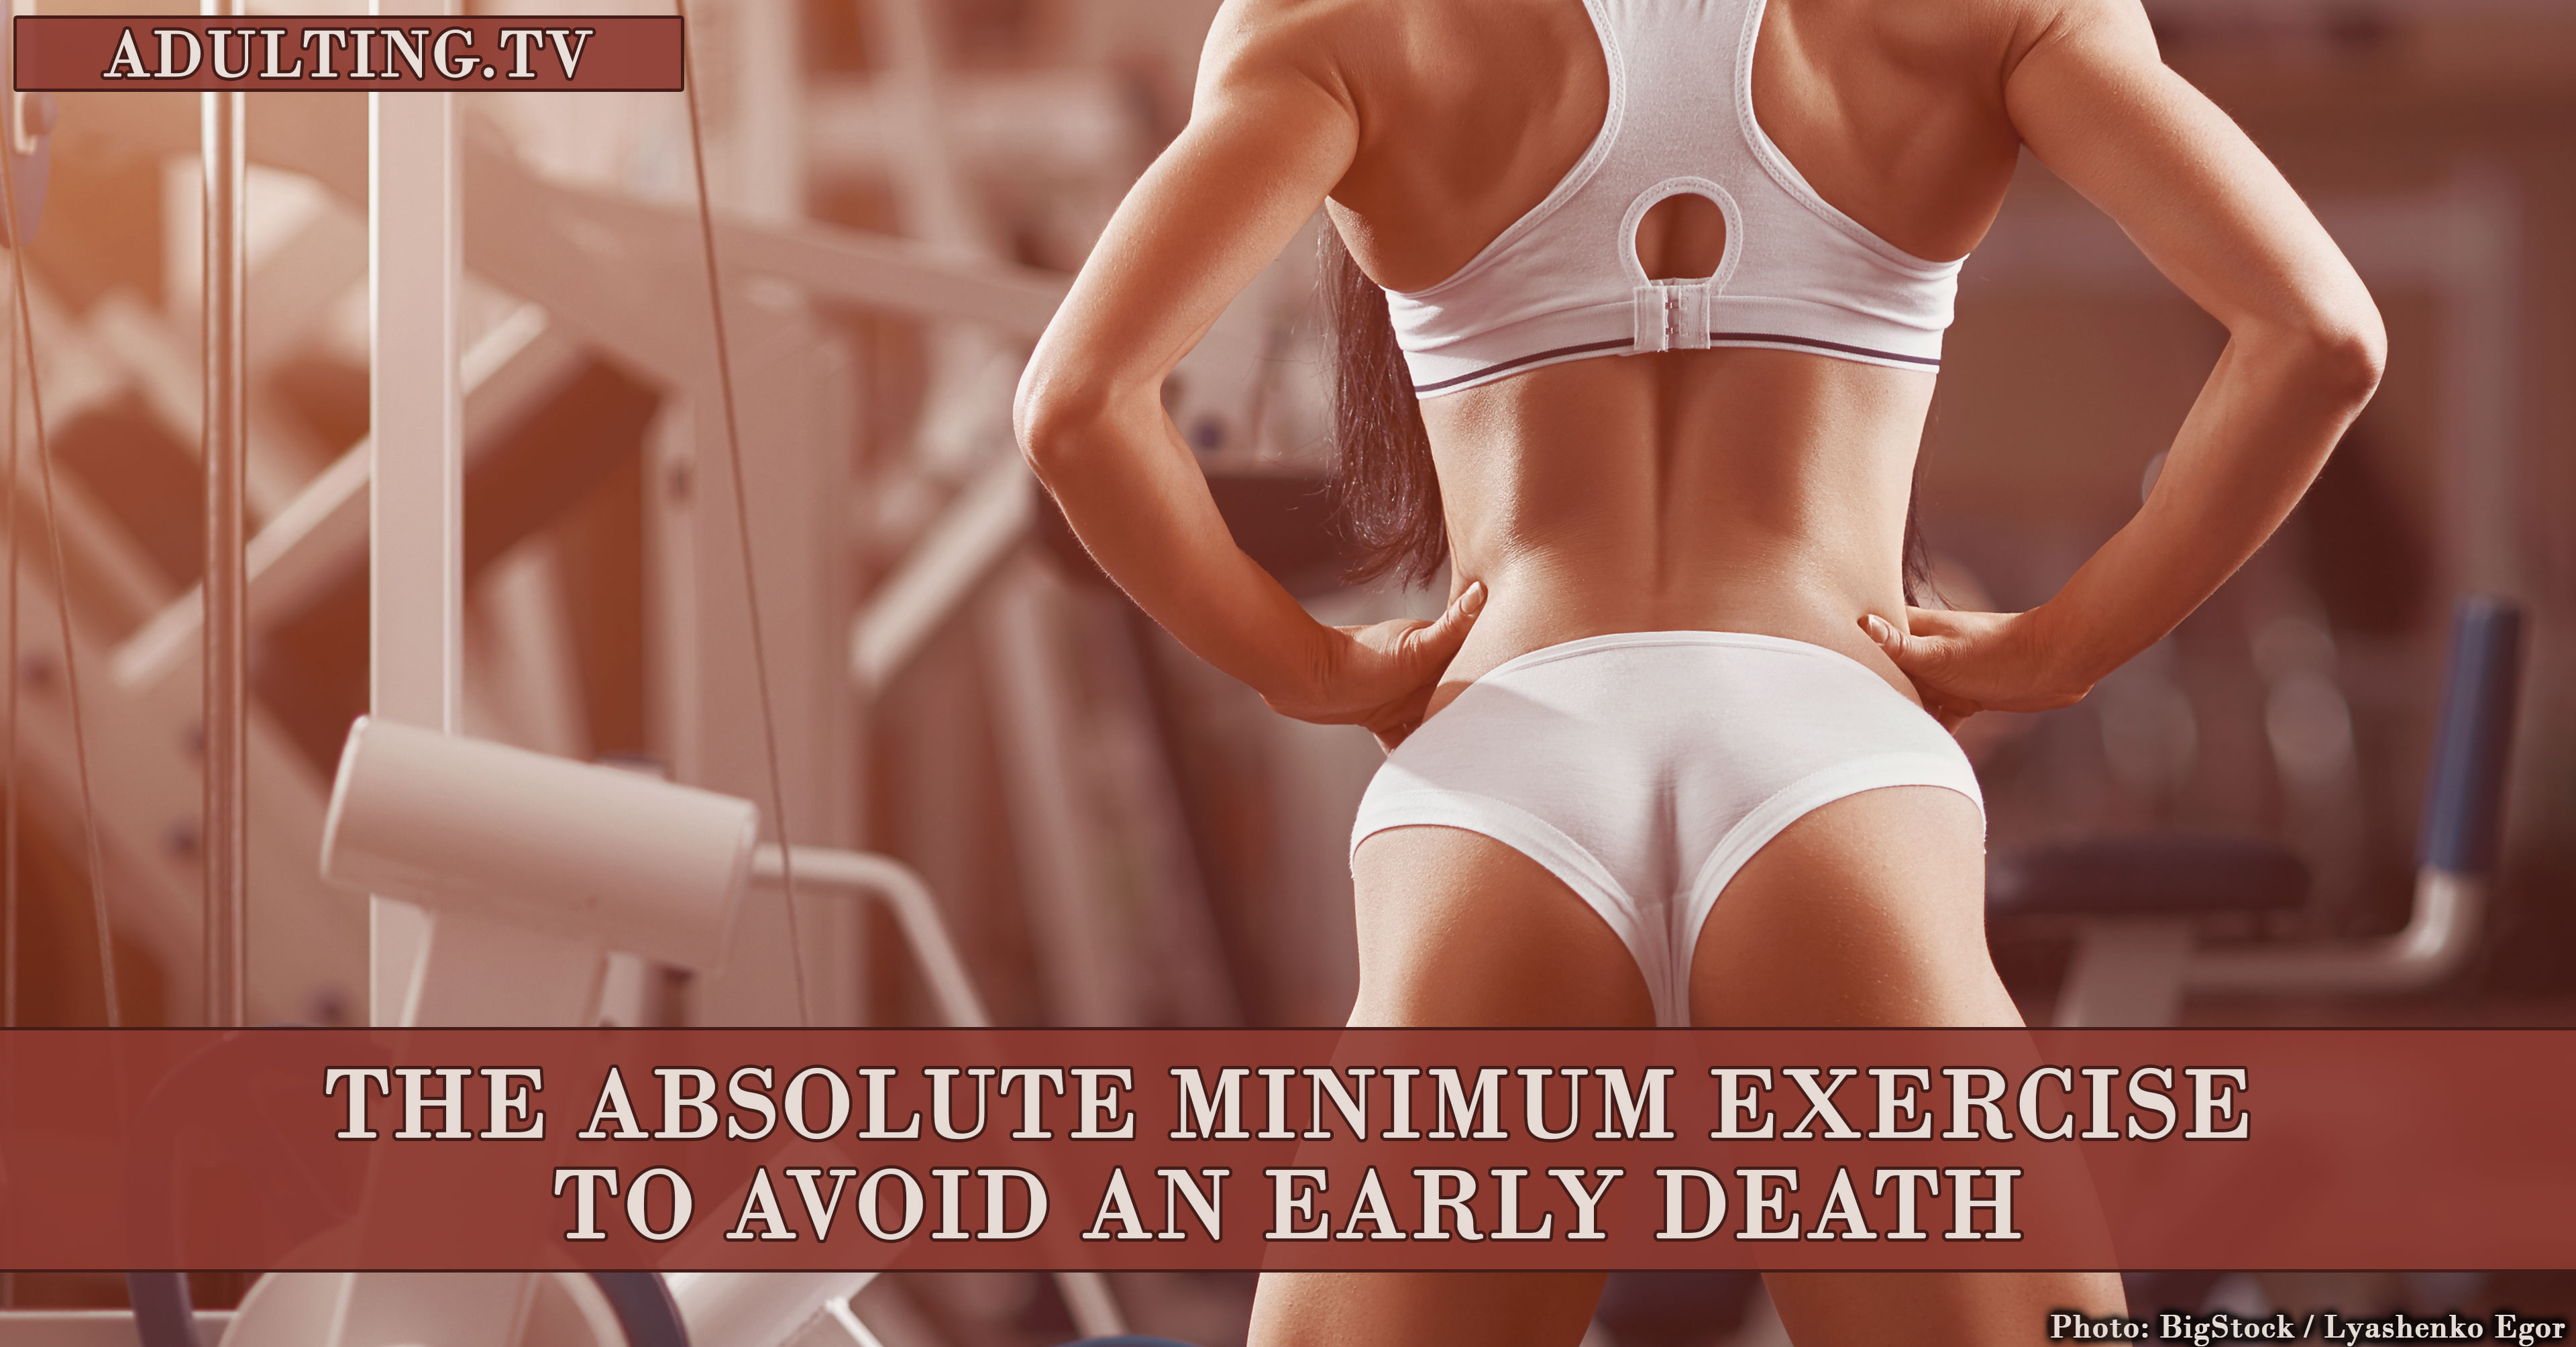 Here's the Absolute Minimum Exercise You Need to Avoid an Early Death